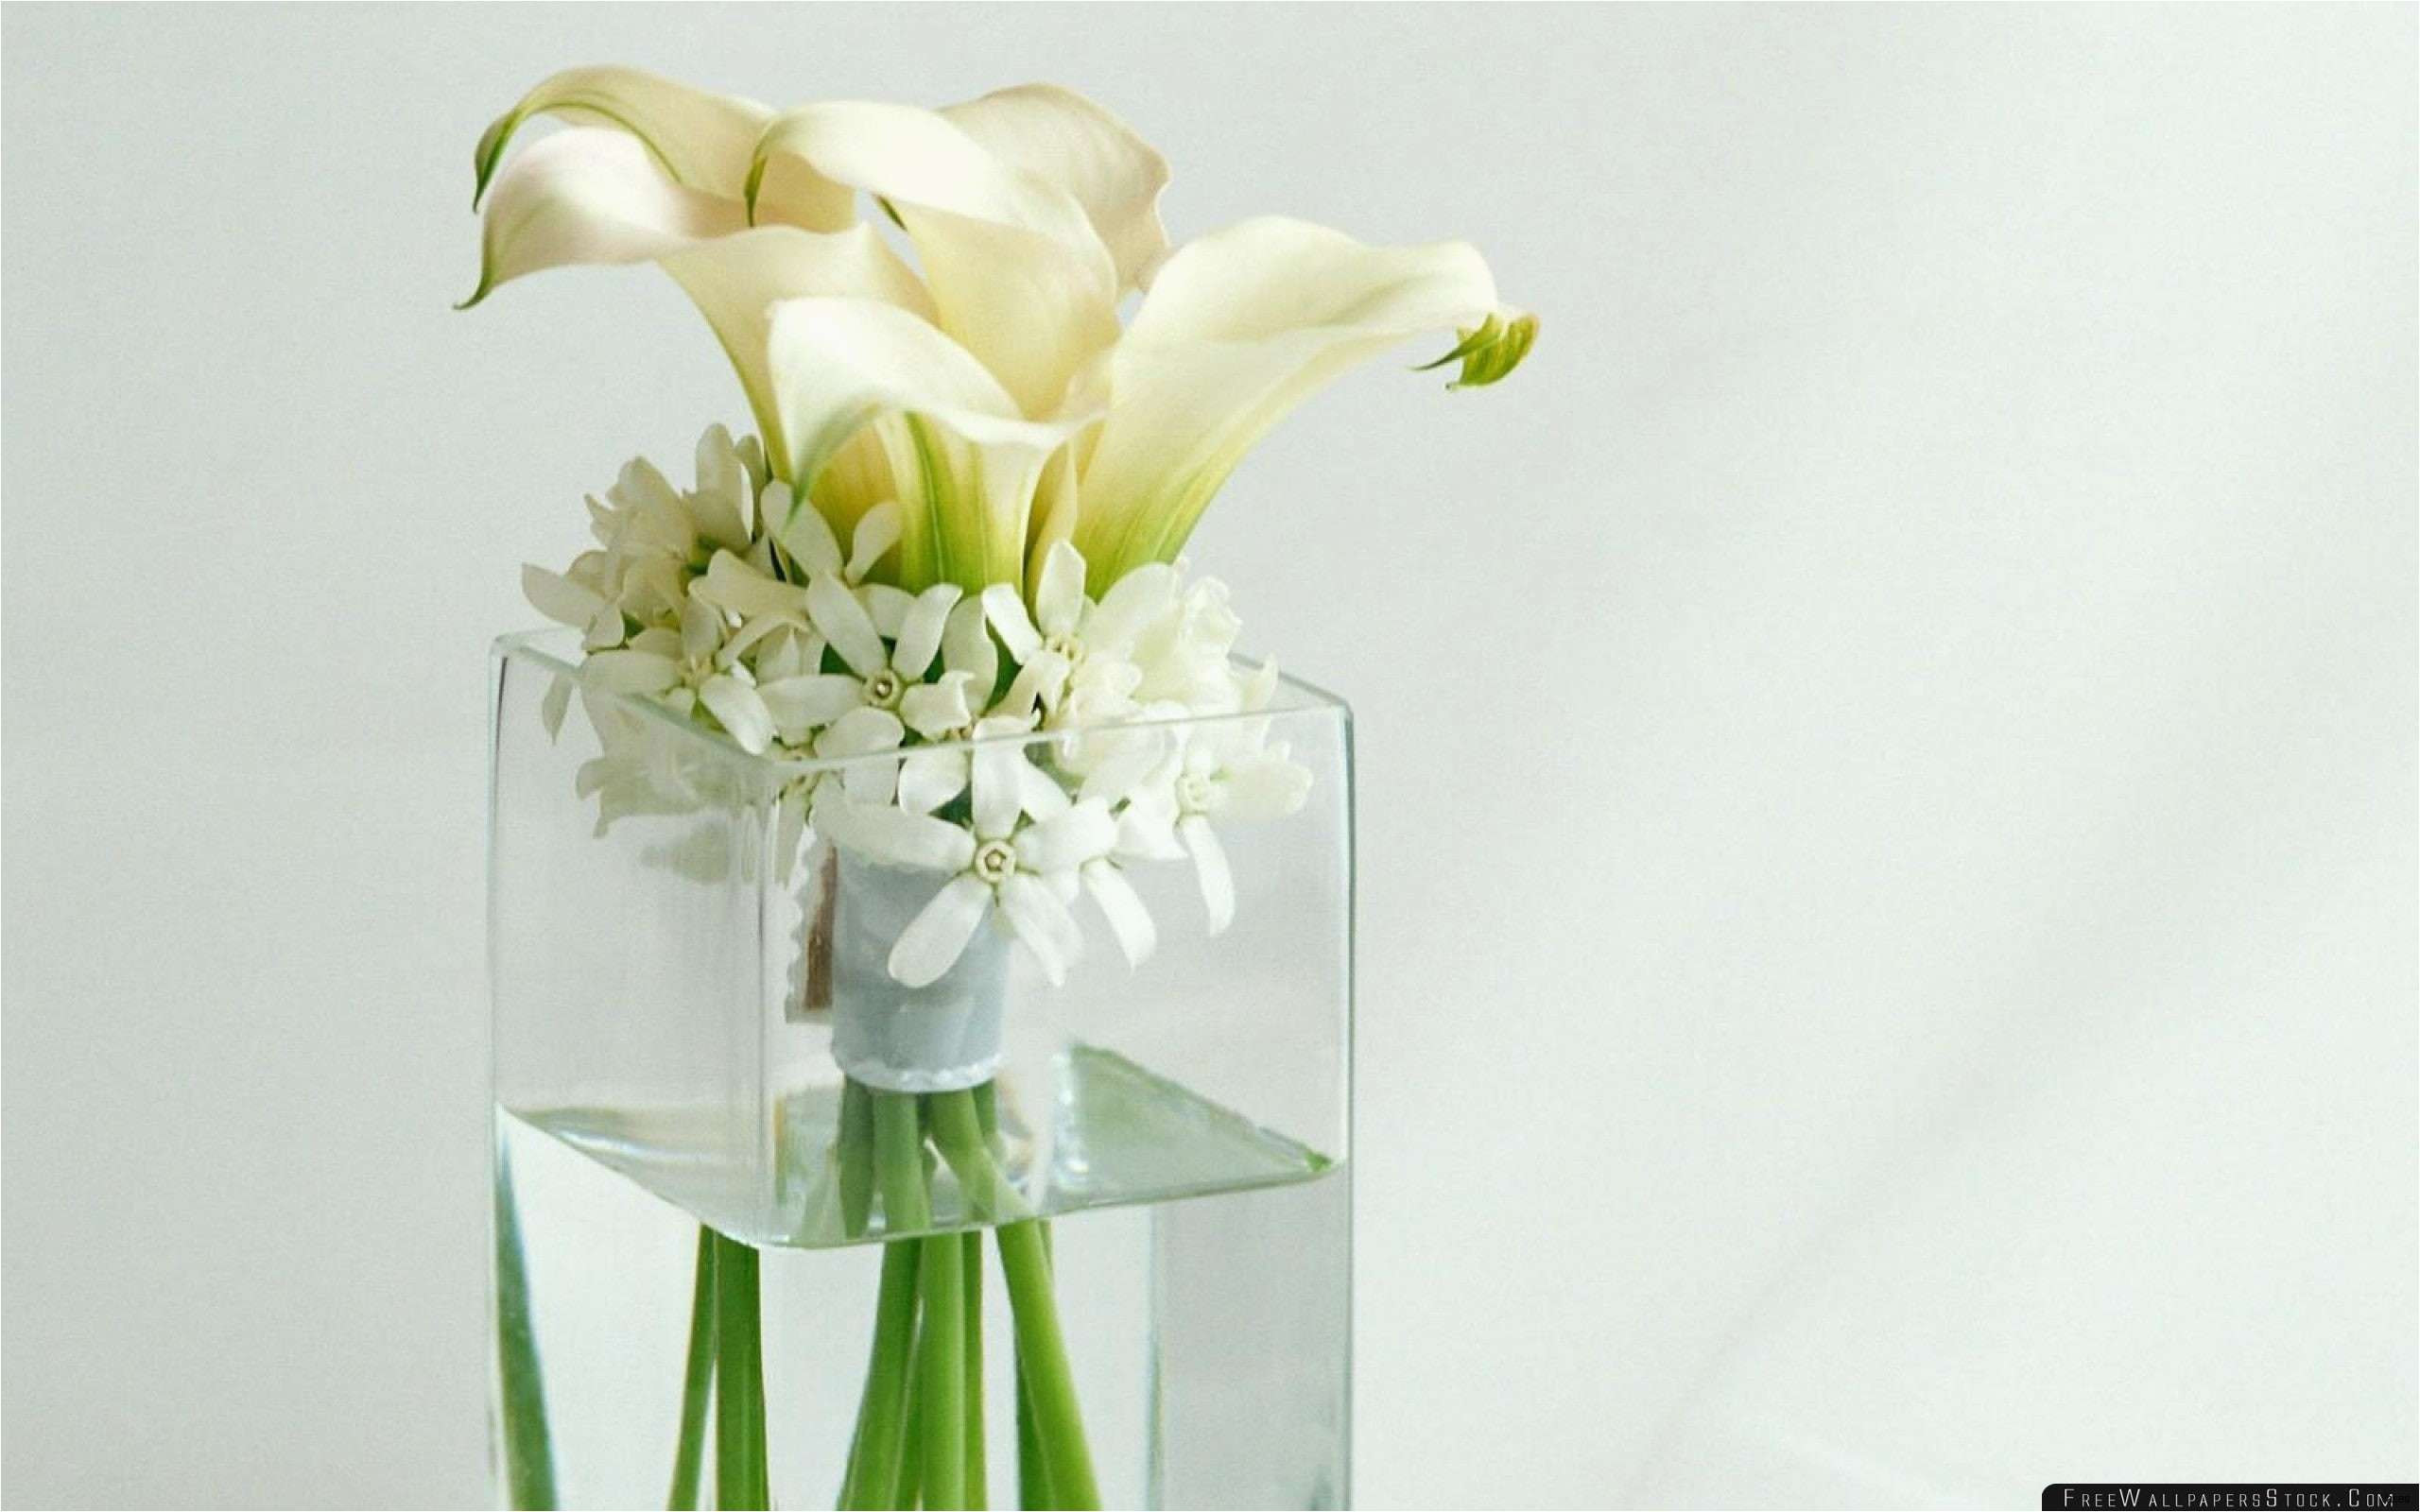 glass floral vases wholesale of 30 bulk photo frames photo best certificate examples with regard to best trumpet vases bulk fresh tall vase centerpiece ideas vases flowers in water 0d artificial gallery